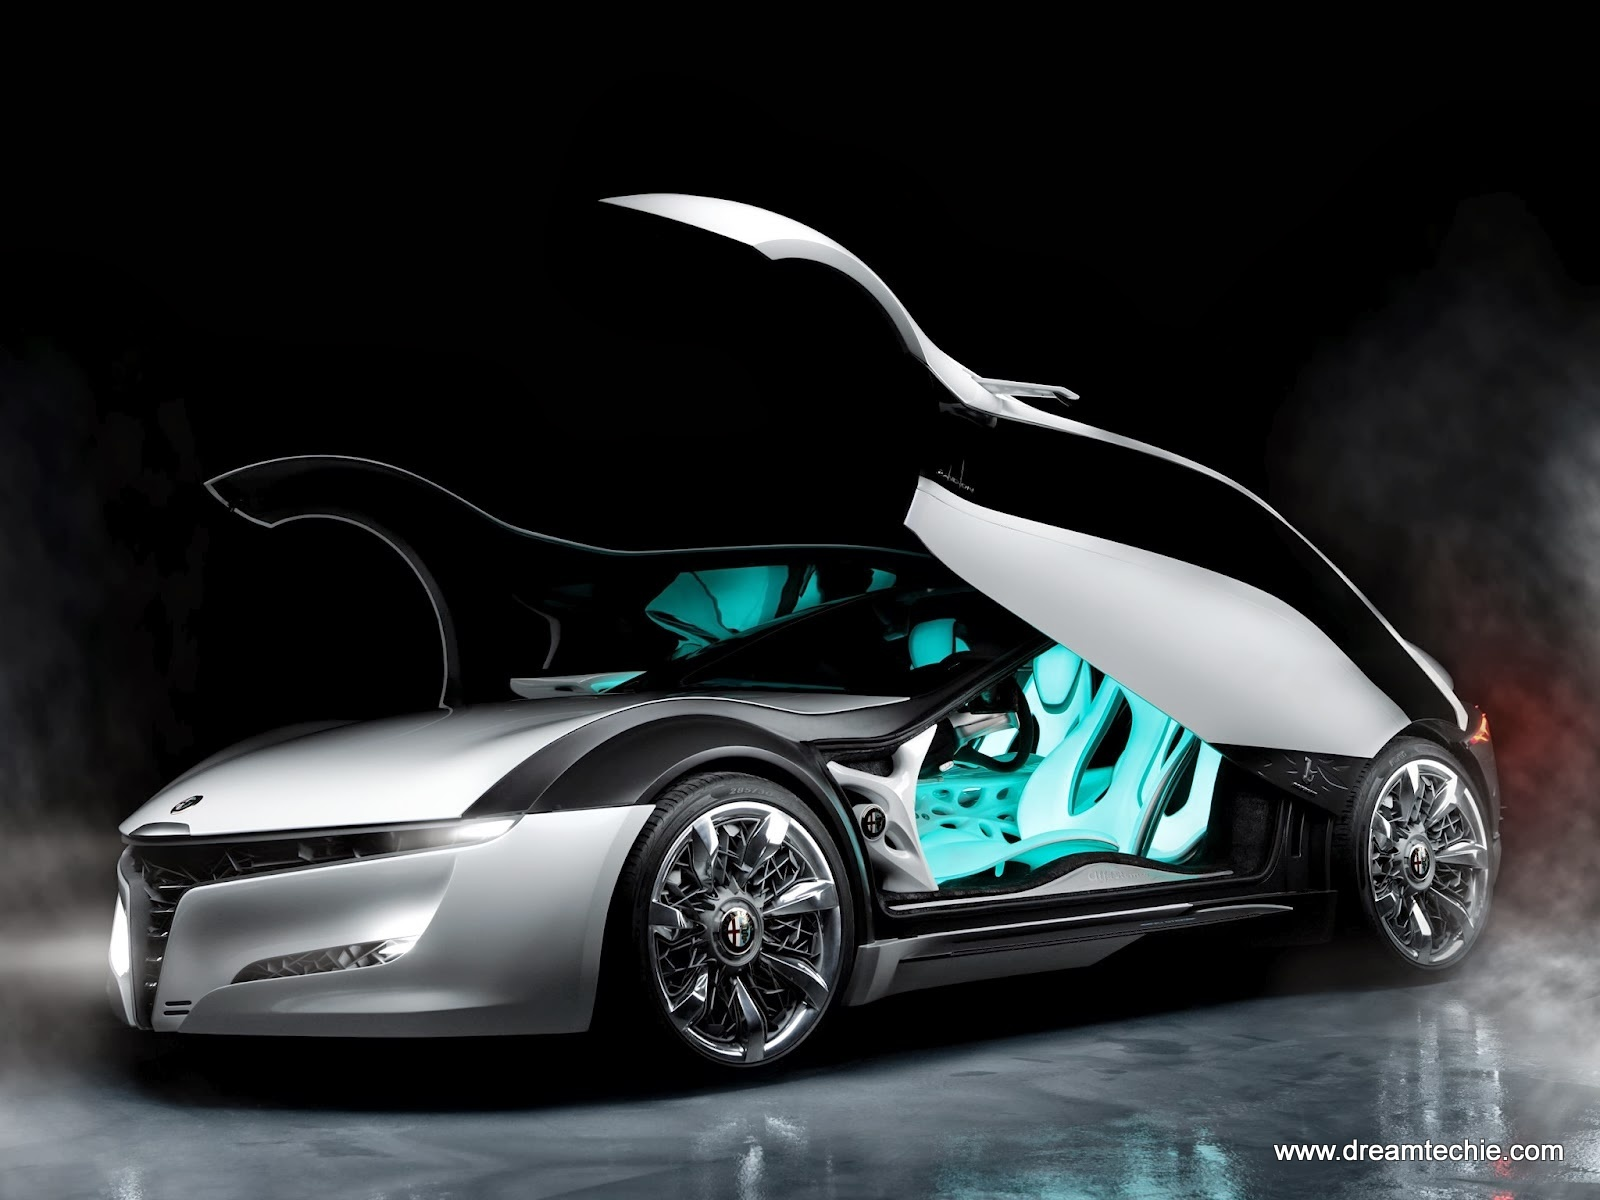 Alfa Romeo Pandion Concept Car free hd wallpaper for mobiles